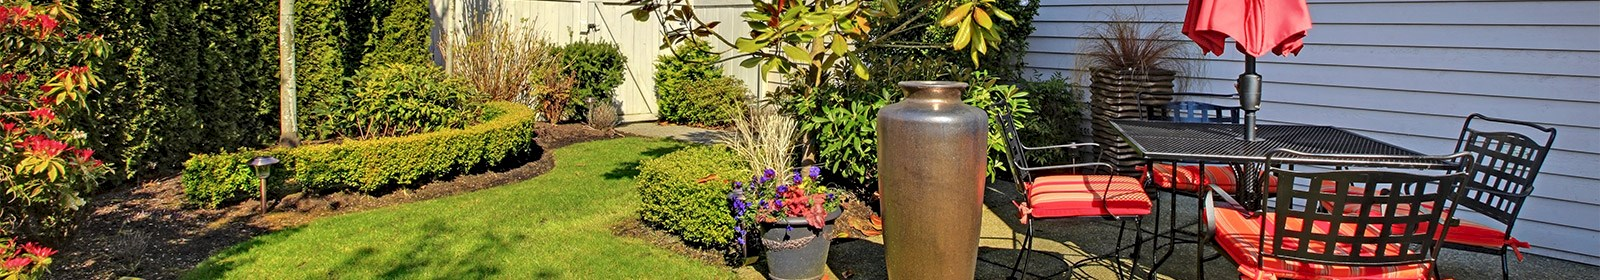 Refresh your tired outdoor space